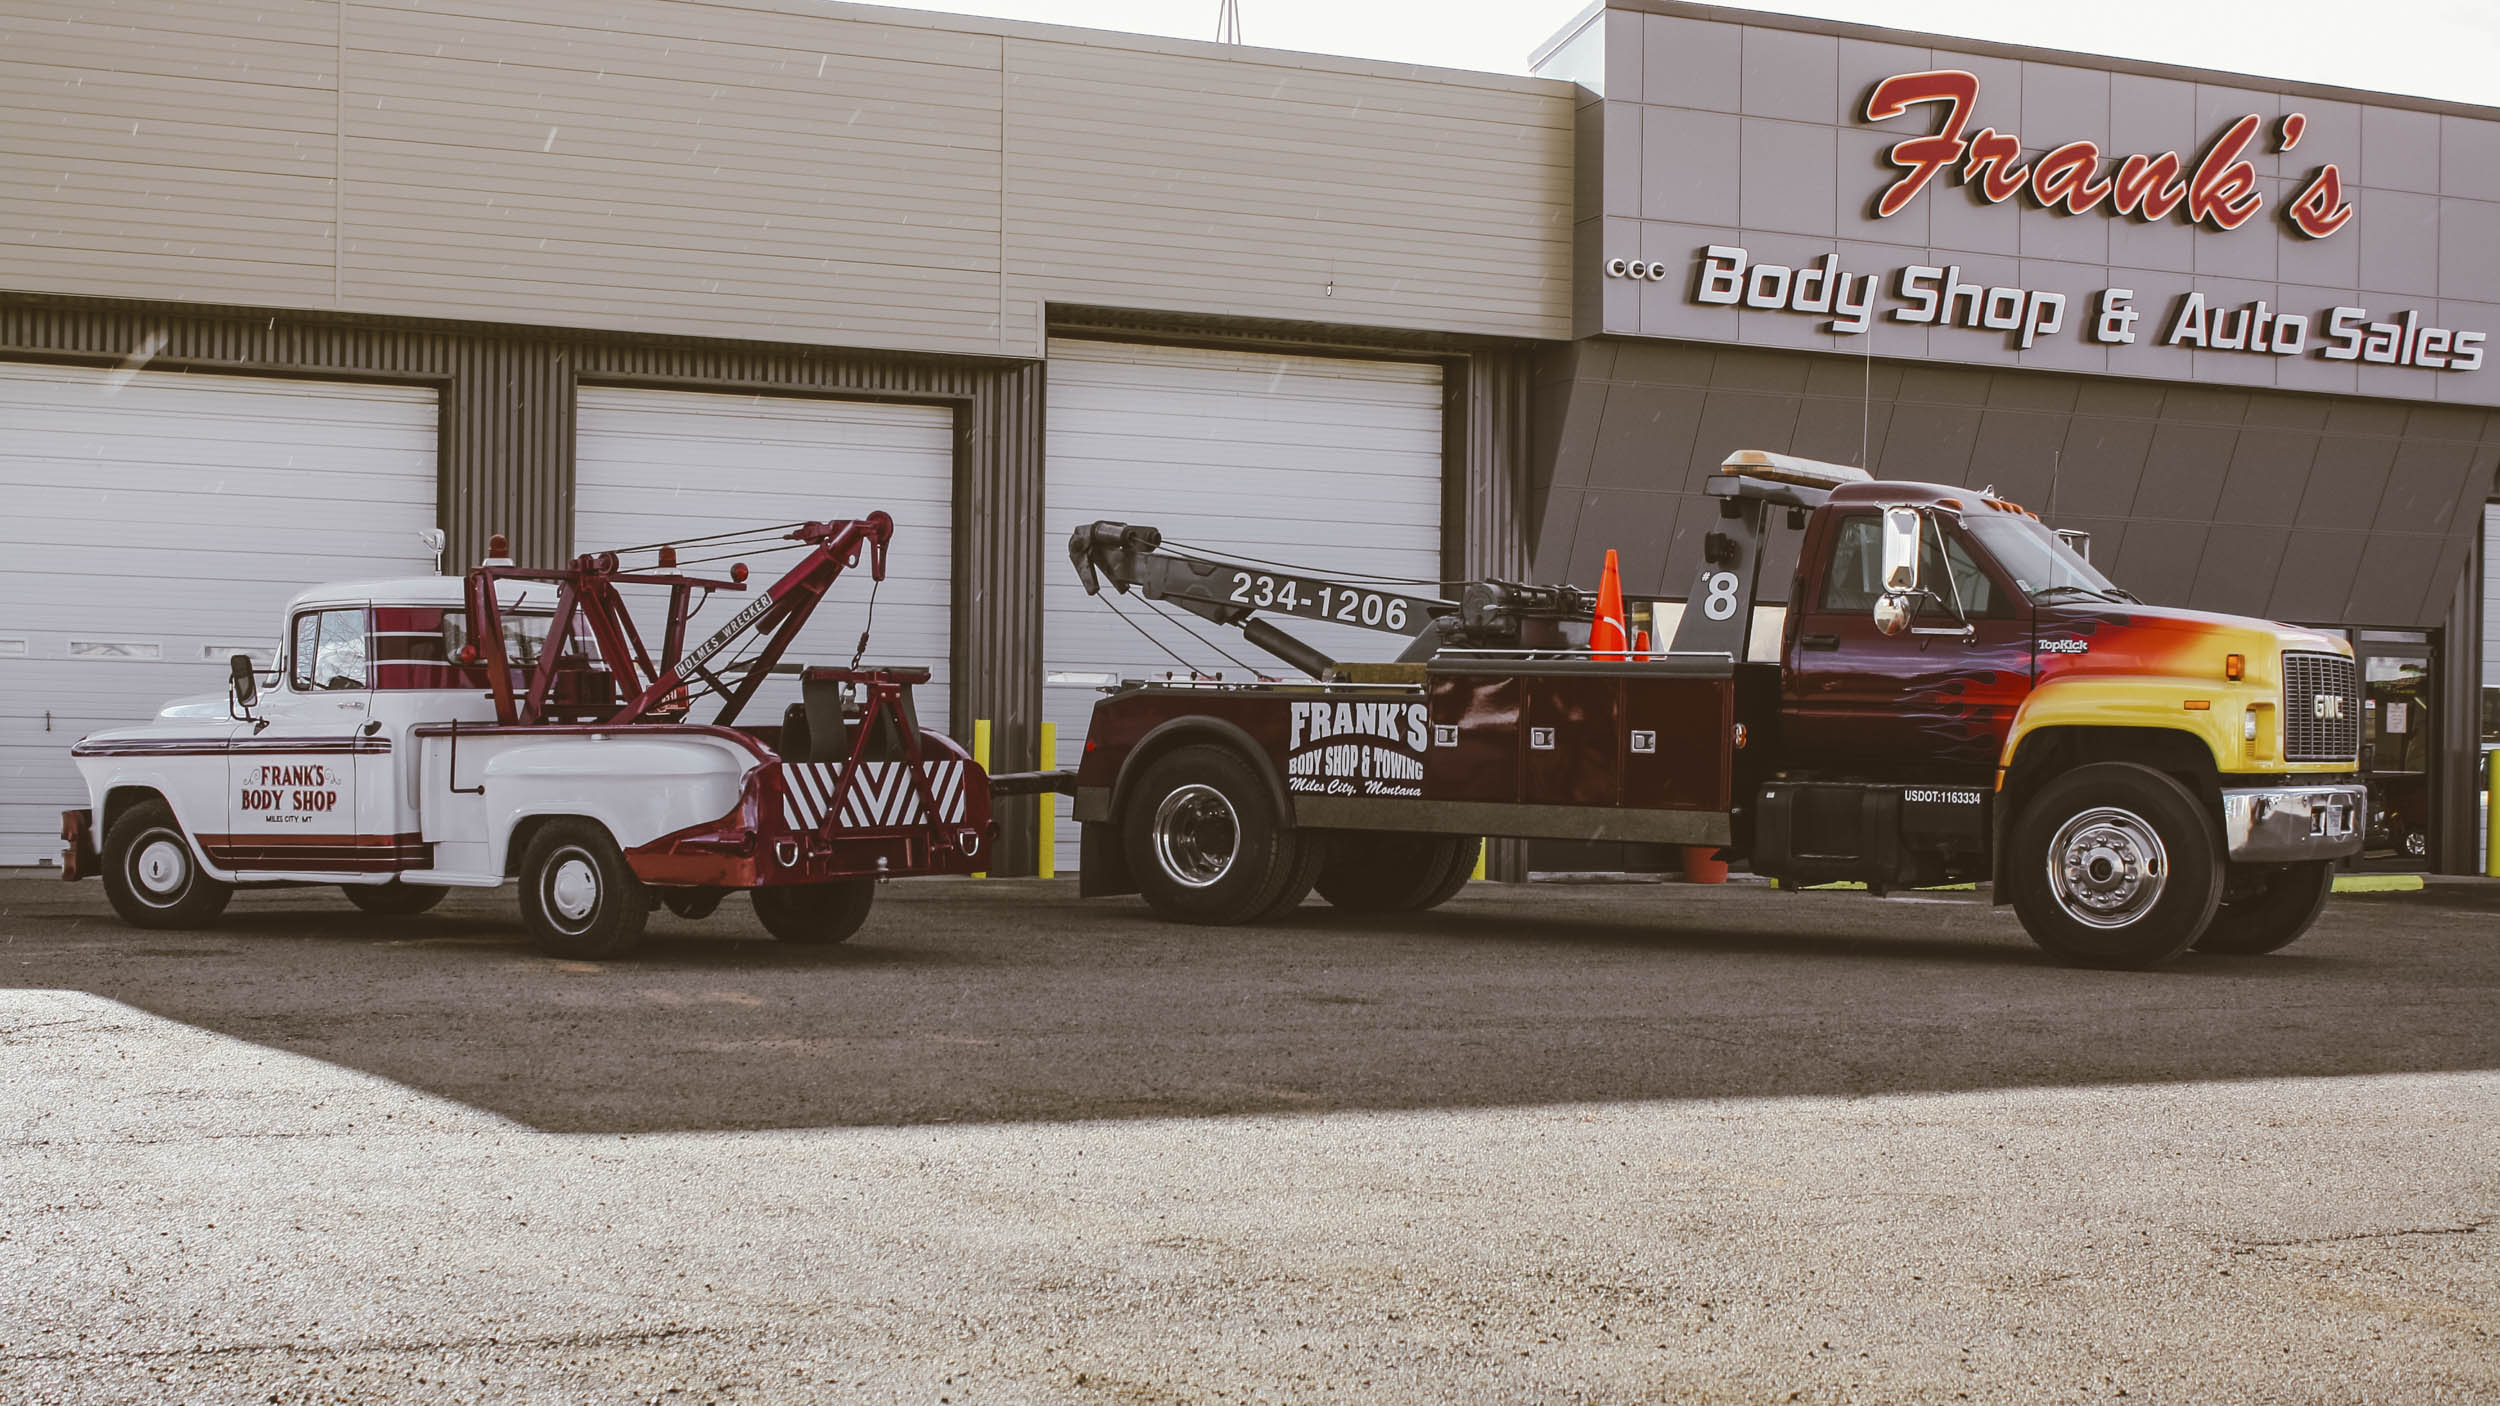 Parked alongside one of the shop's newer medium-duty wreckers the 3/4-ton Chevrolet is dwarfed. Though Tim changed the look of the trucks paint scheme in the early 2000s, he kept a few of the colors to pay homage to the legacy his father built.